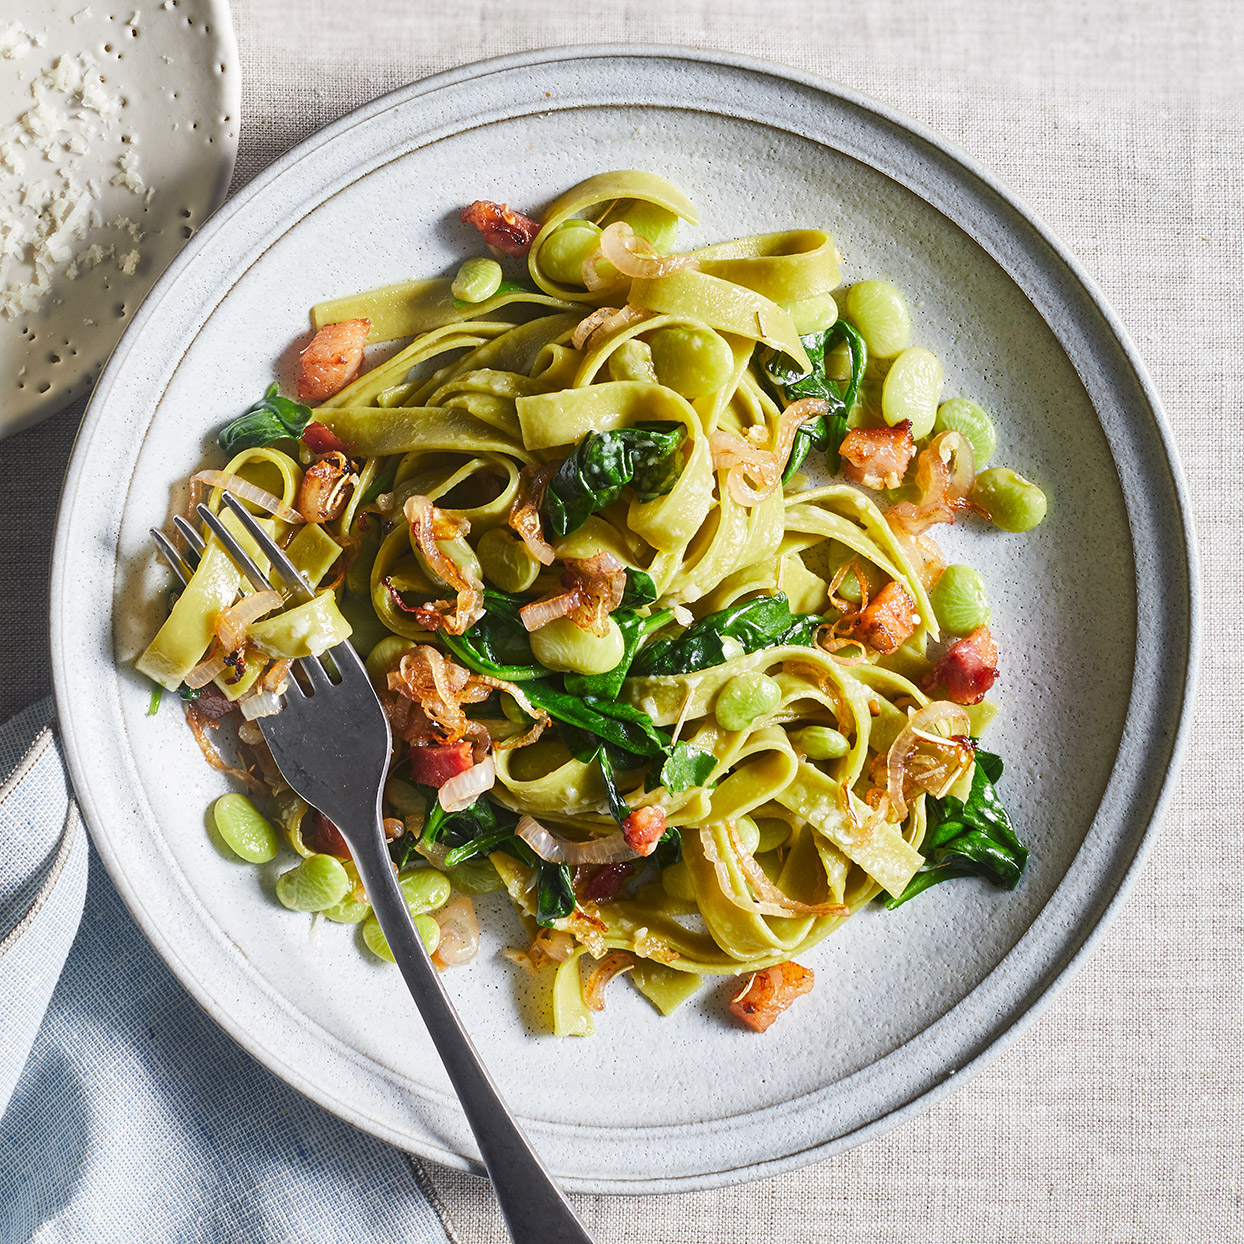 We opt for fresh spinach pasta here--it cooks quickly and adds a pop of color. Cooking lima beans in pancetta drippings infuses them with flavor. Source: EatingWell Magazine, March 2020